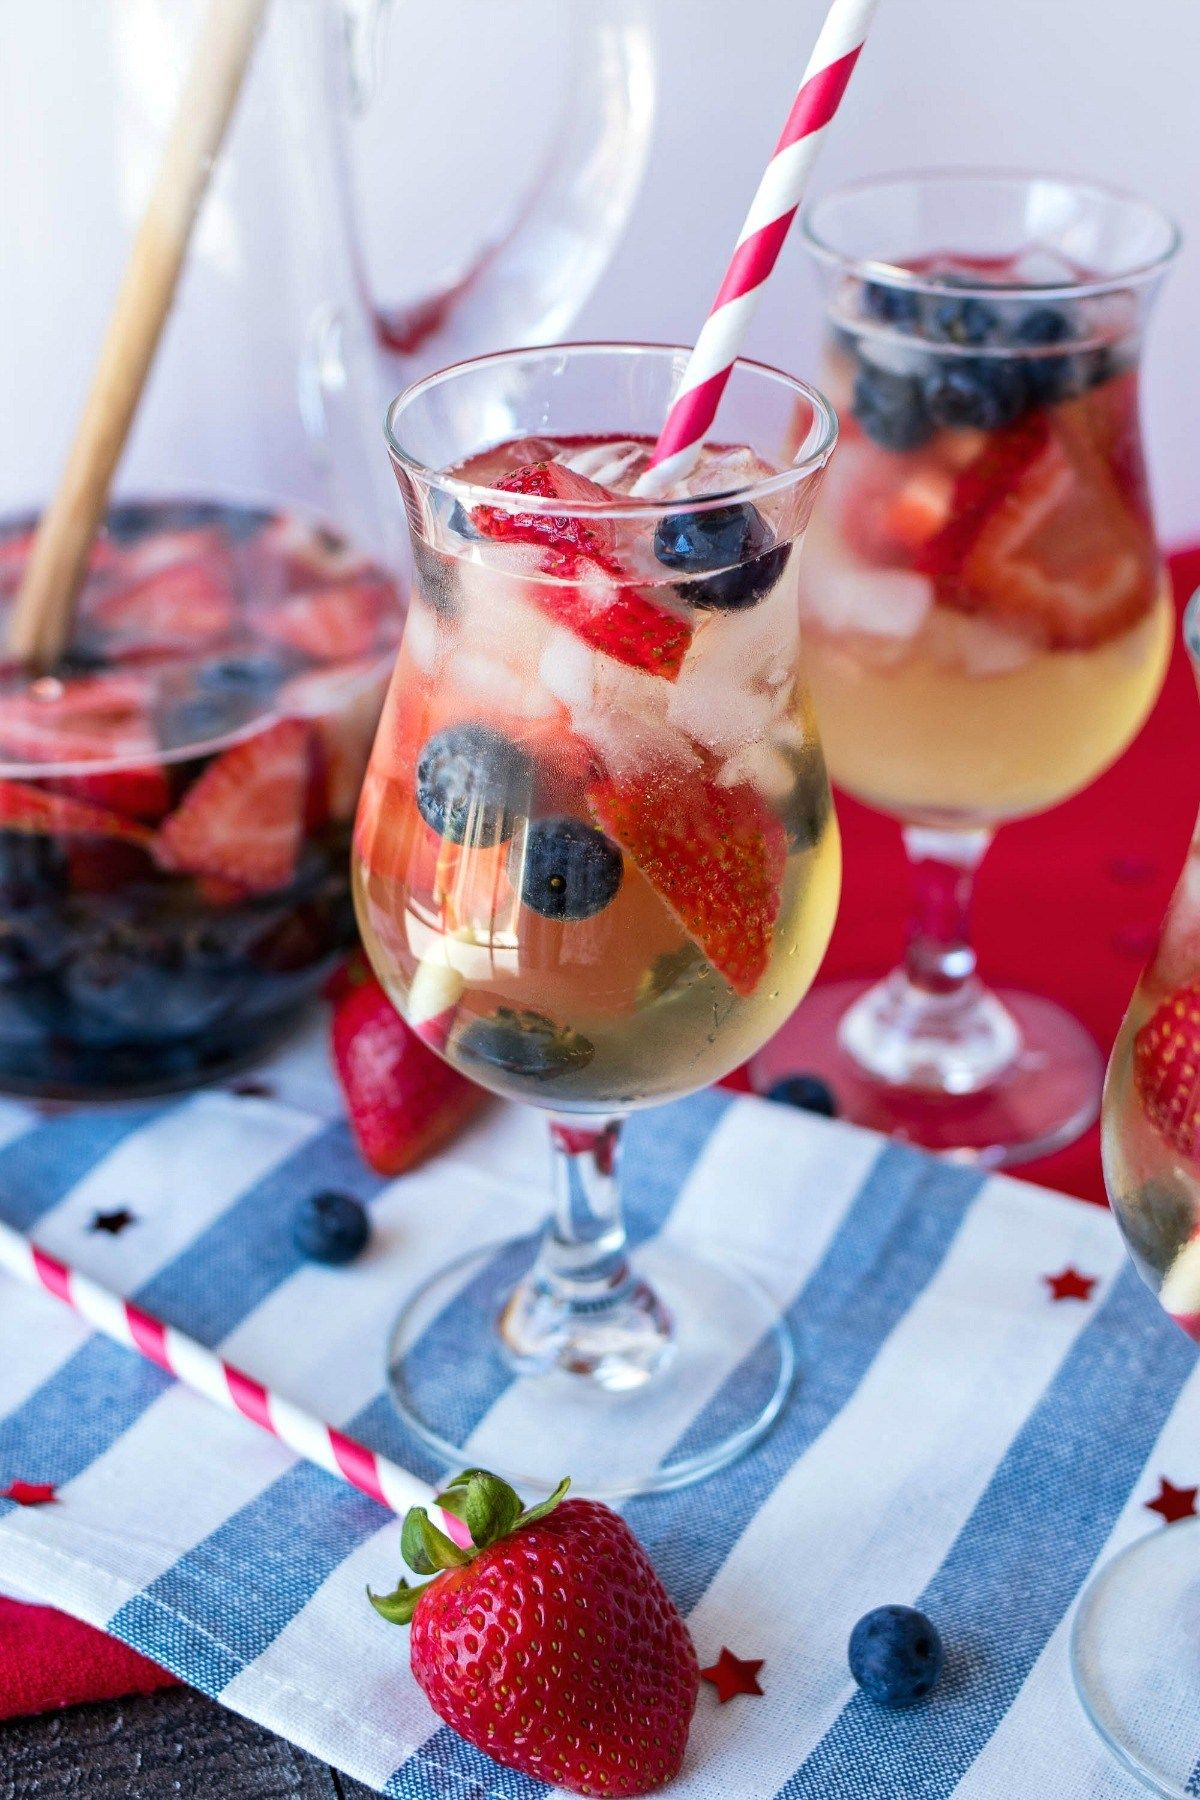 Red White Blue Sangria A Refreshing White Sangria Made With Dry White Wine Brandy And To White Sangria Recipe Patriotic Cocktails 4th Of July Cocktails